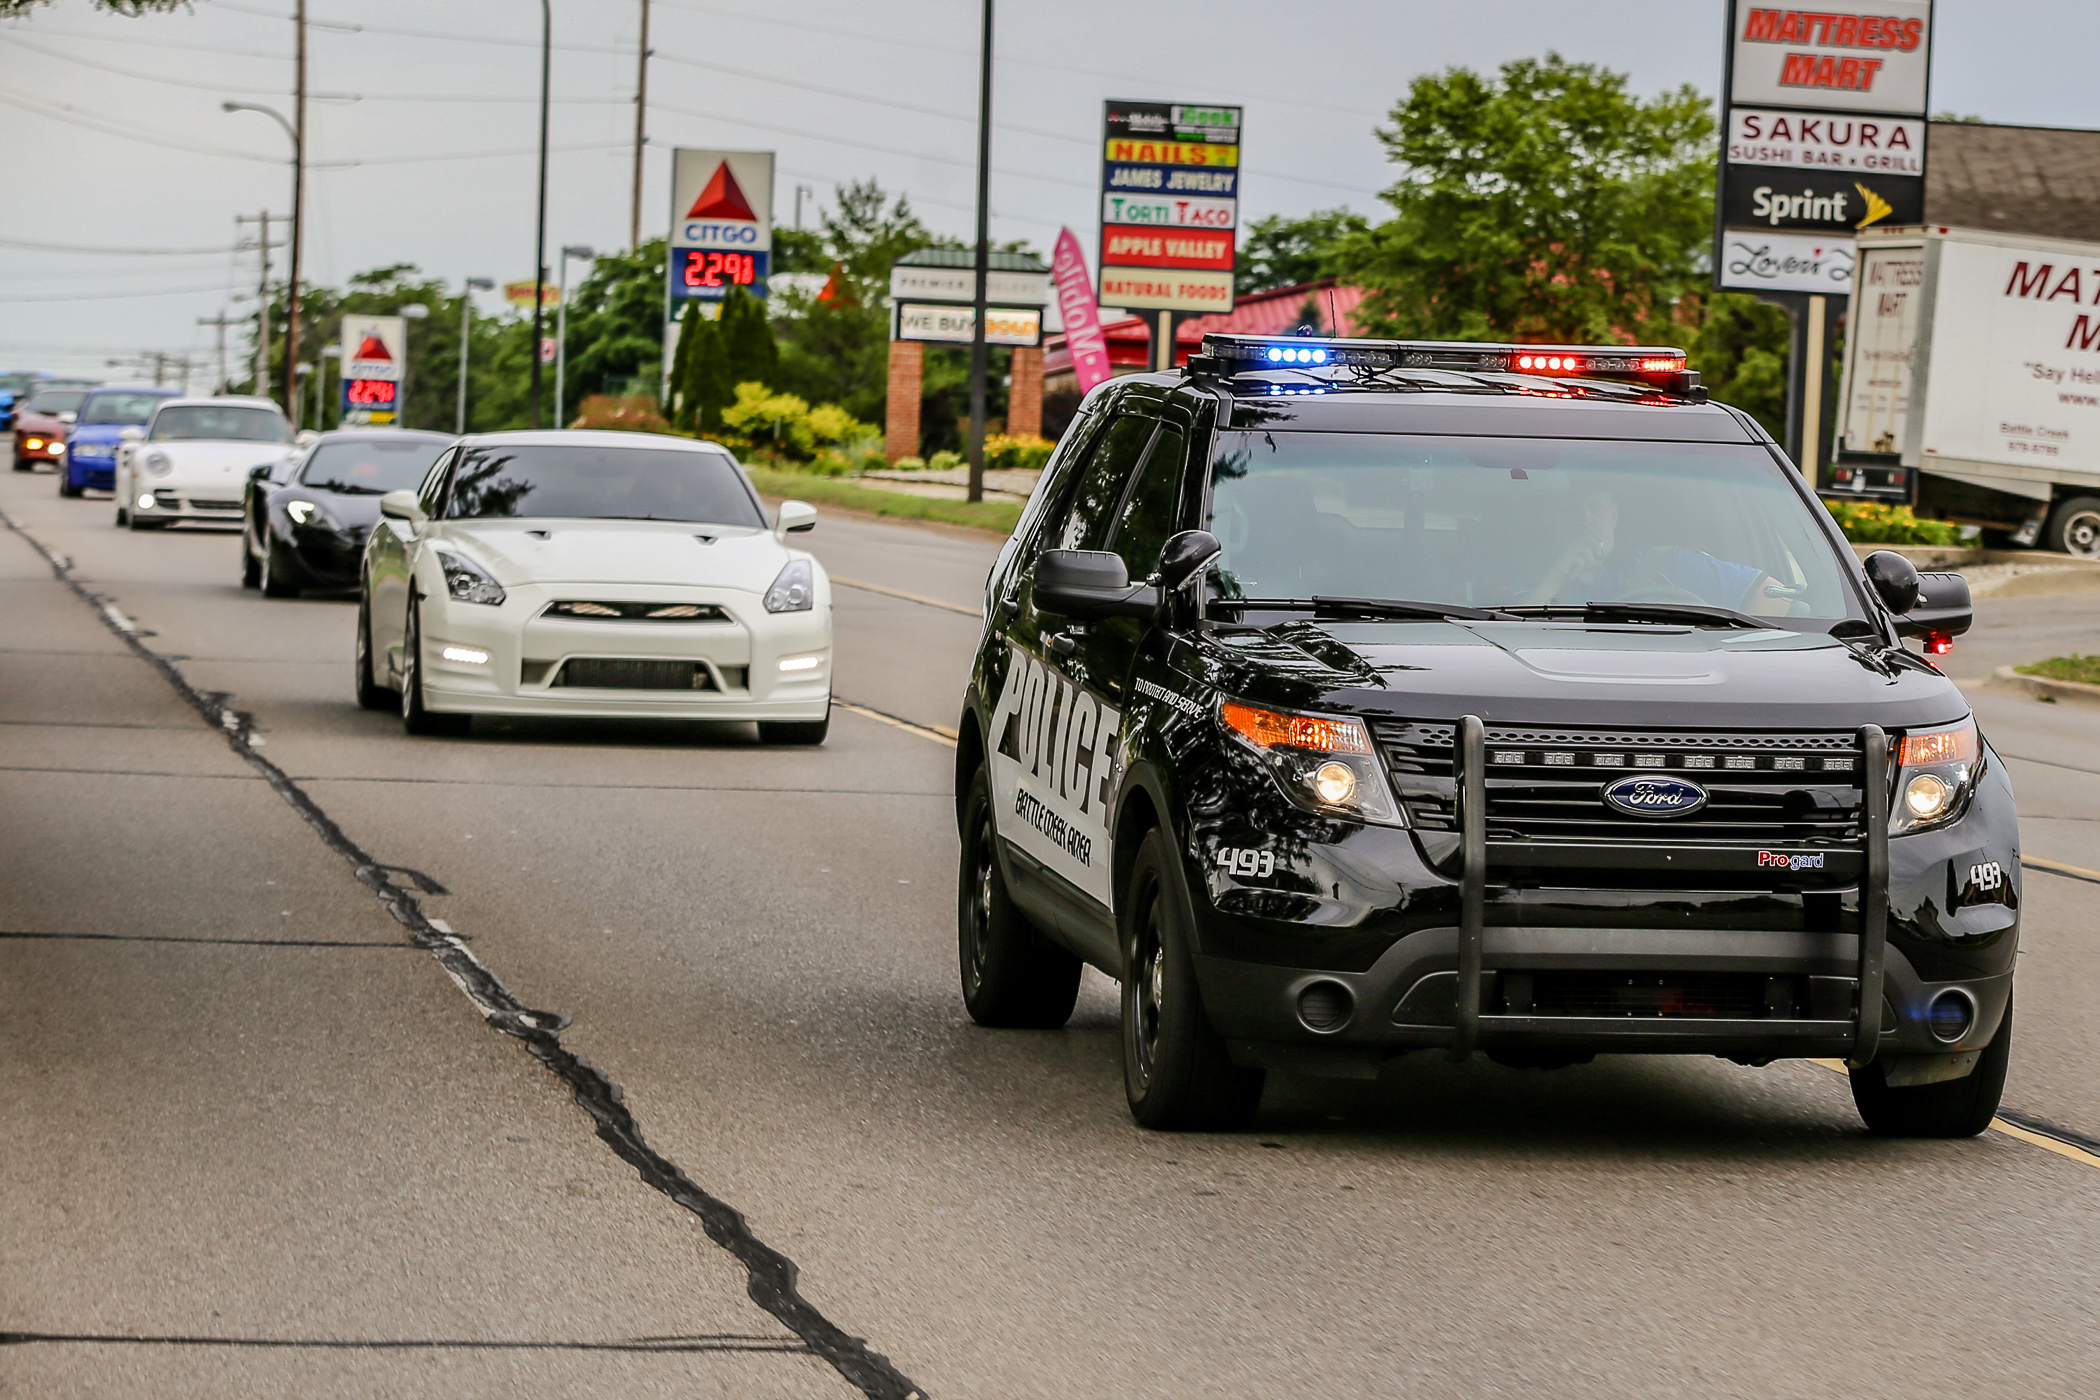 Battle Creek Police Department Escort  Please be polite and obey their instructions. They are on our side and supports us 100% from day 1.